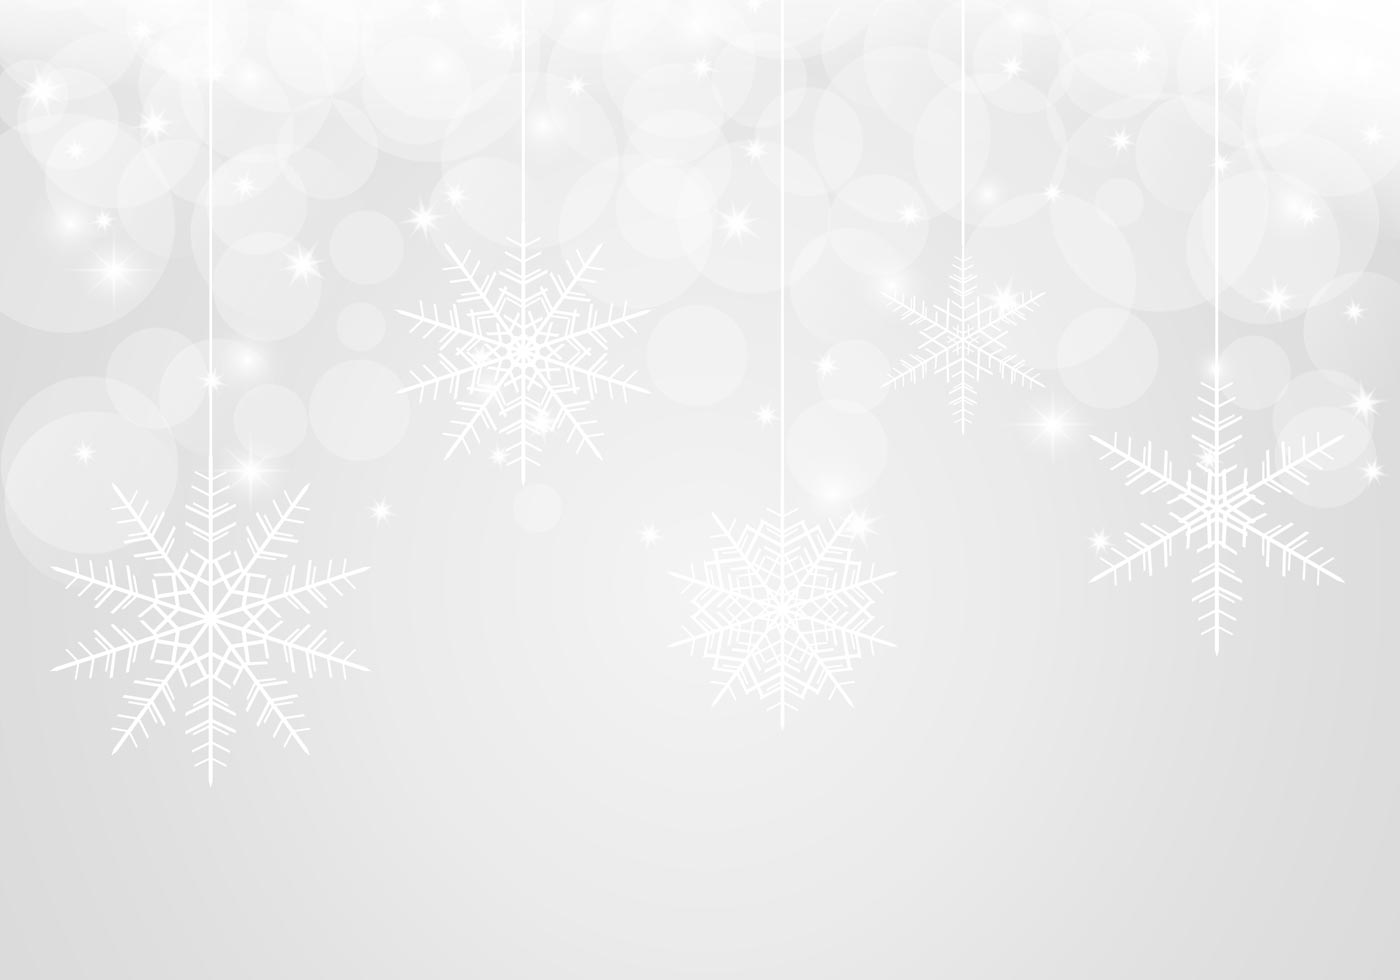 Bokeh Snowflake Background PSD Free Photoshop Brushes At